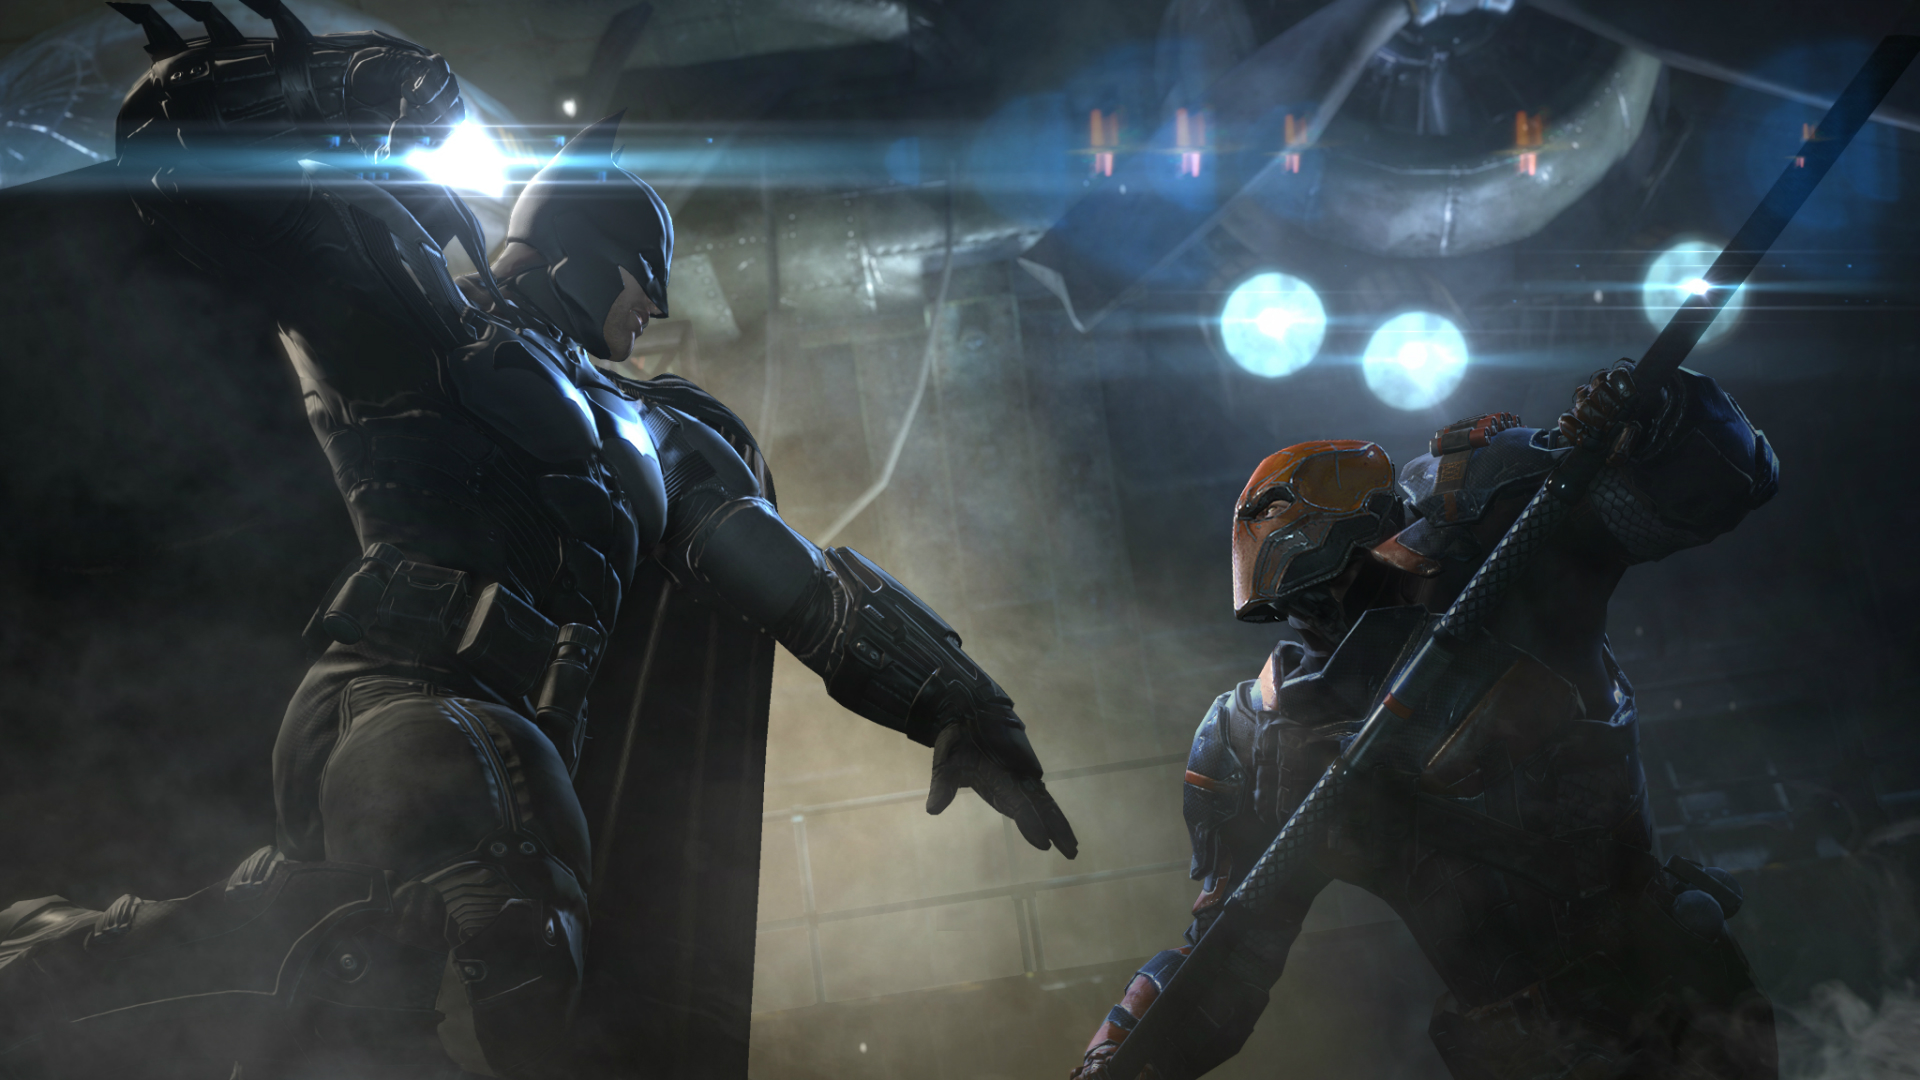 Batman_versus_Deathstroke